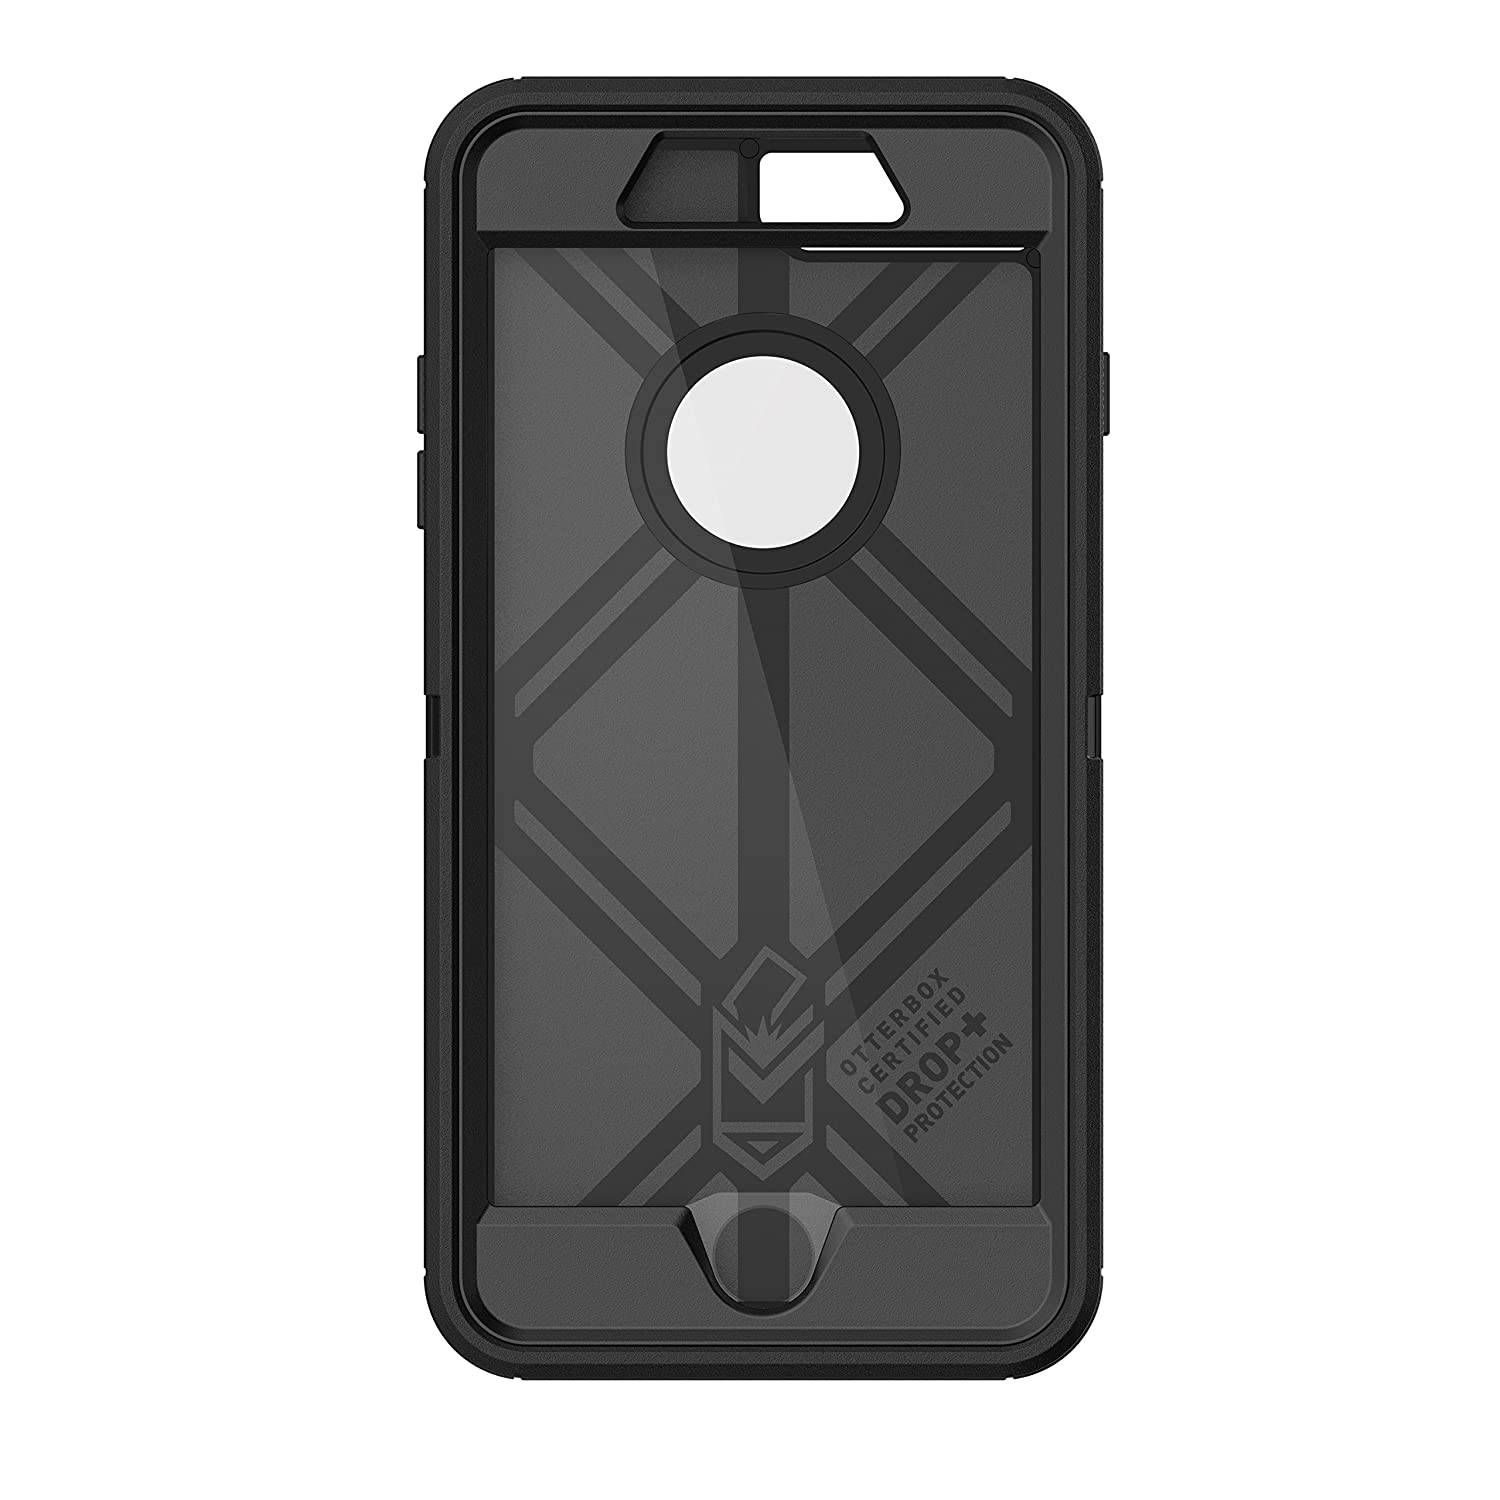 buy online c3048 9dc2e OtterBox DEFENDER SERIES Case for iPhone 8 Plus & iPhone 7 Plus (ONLY) -  Retail Packaging - BLACK